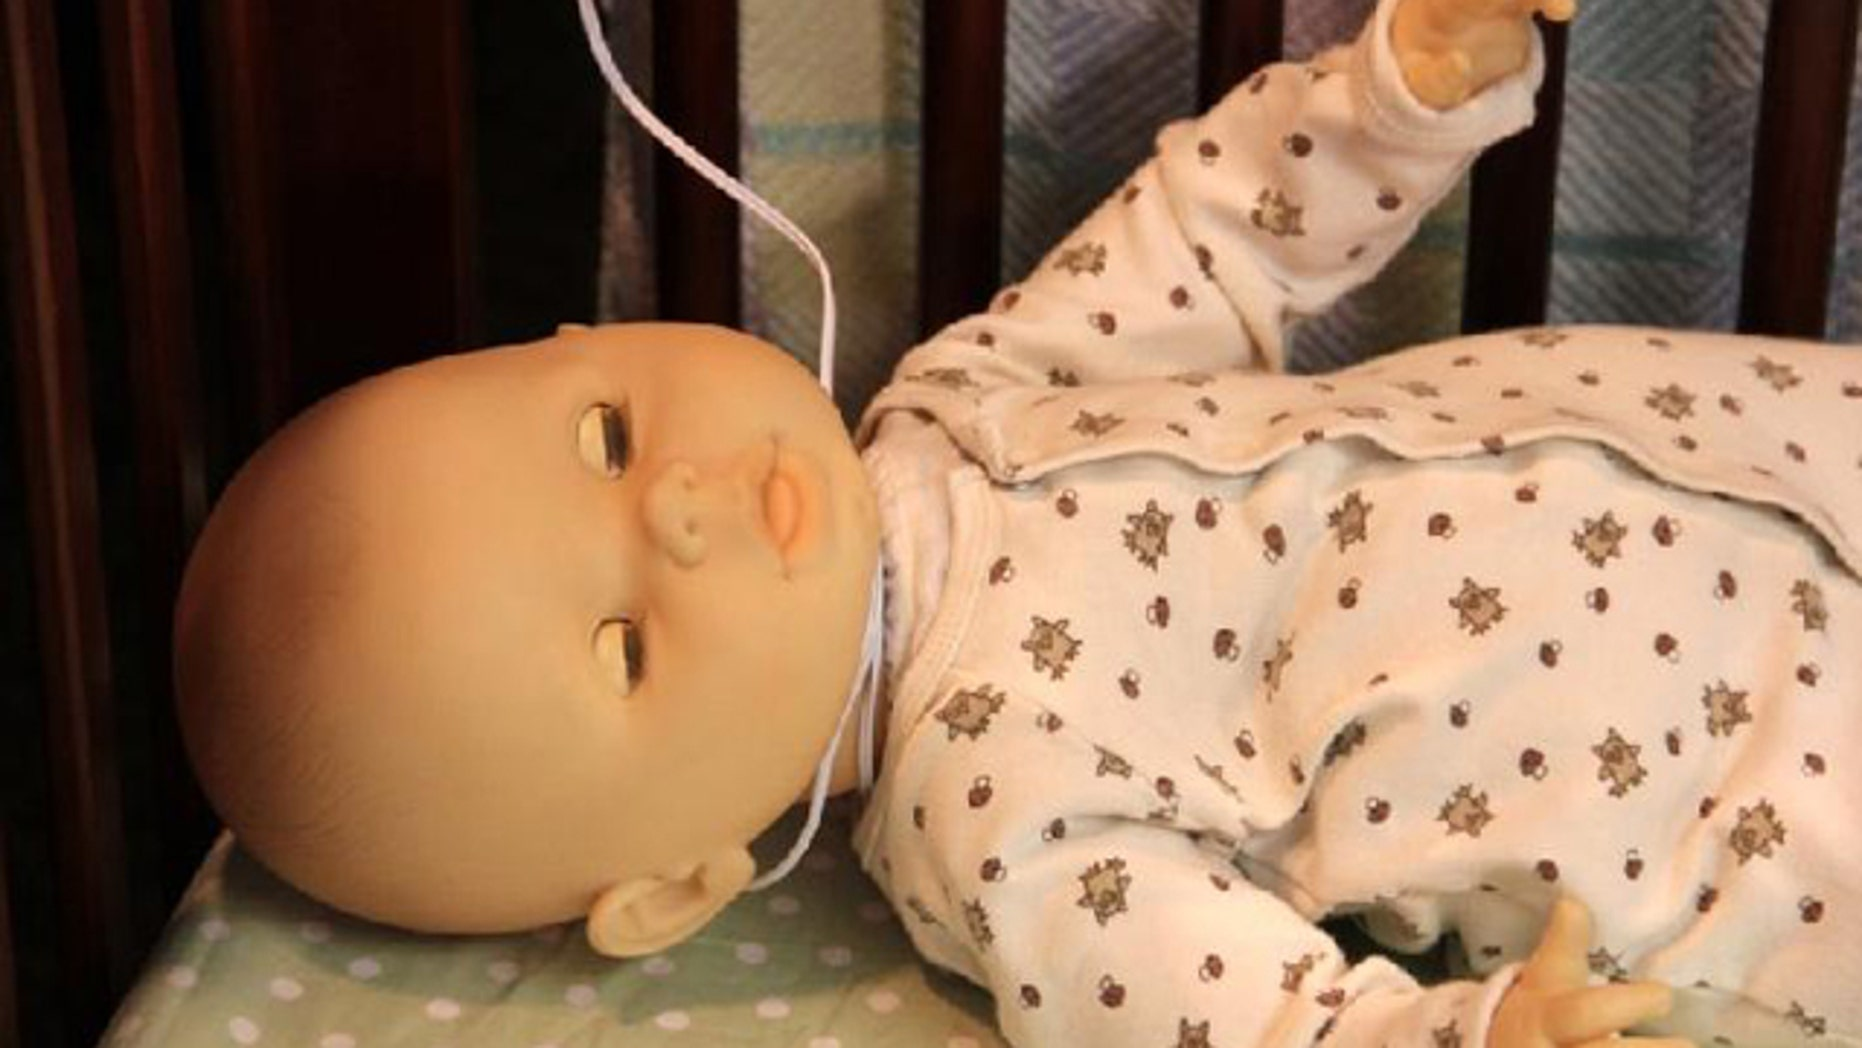 This doll demonstrates how a baby may be strangled by video baby monitor cord.  The Consumer Product Safety Commission has recalled nearly 2 million video baby monitors after the death of two infants.